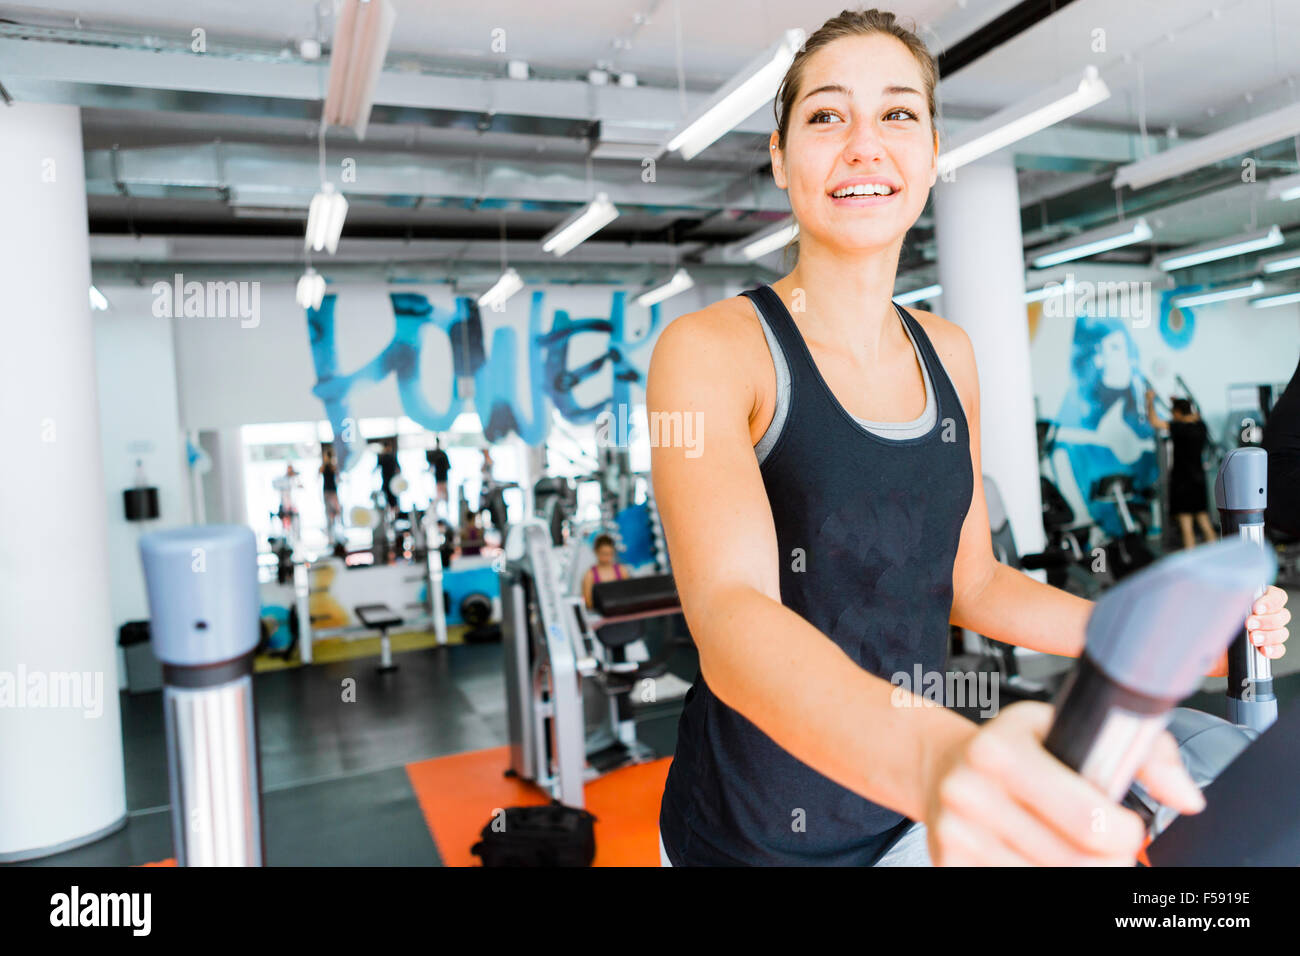 Young fit woman using an elliptic trainer in a fitness center and smiling Stock Photo